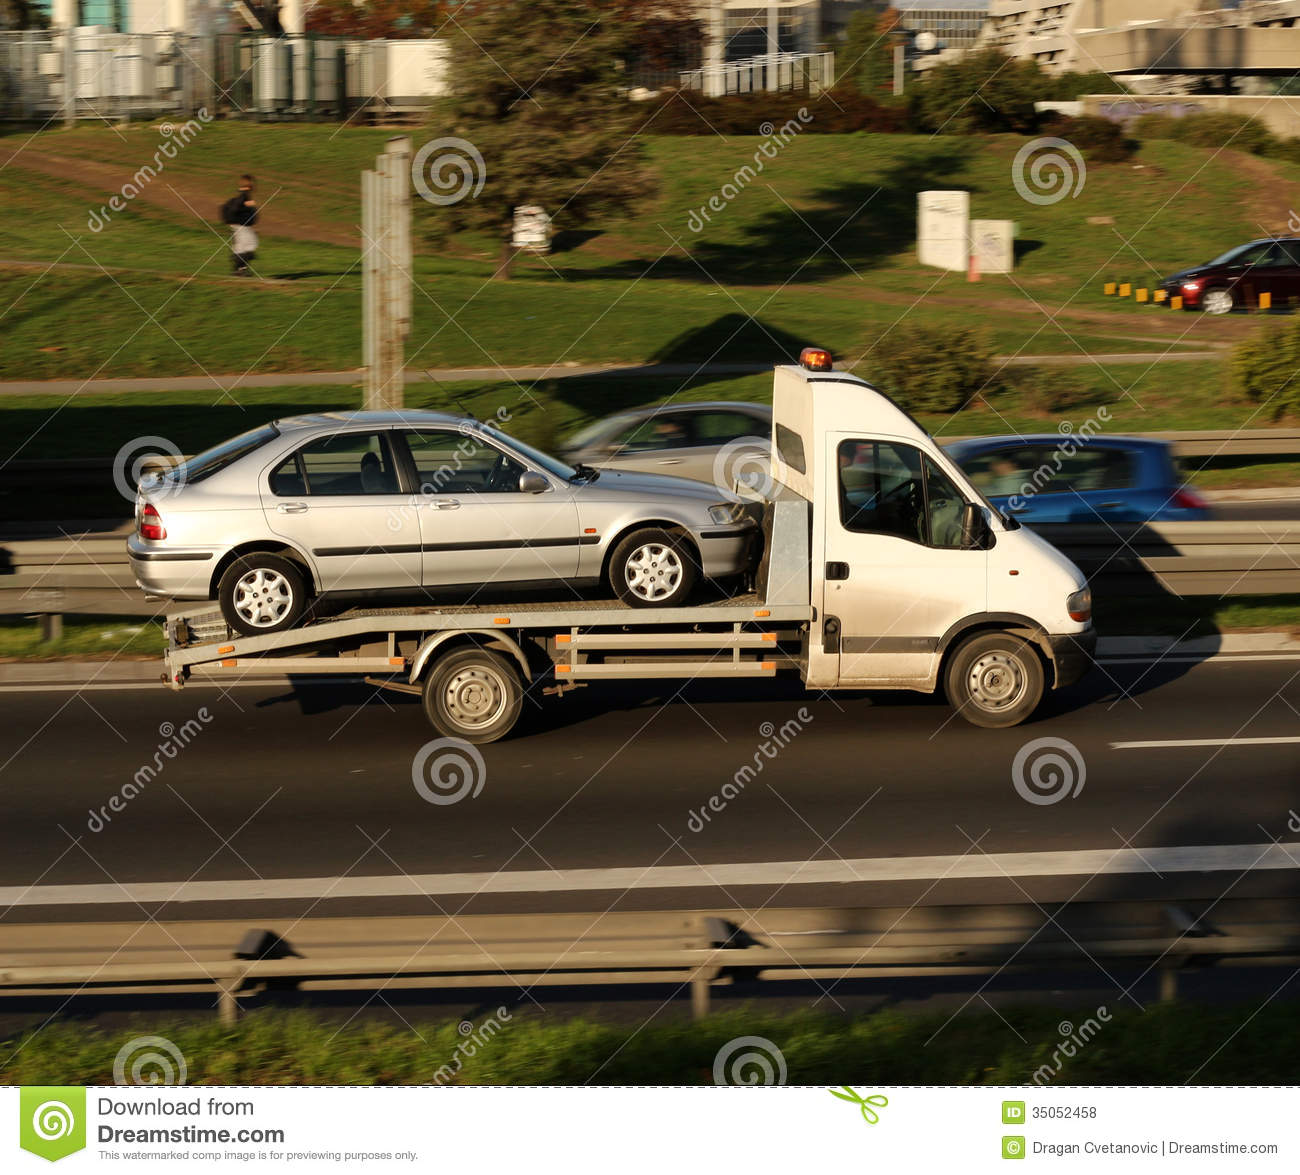 Silver Car Being Towed On A Towing Truck Speeding On A Highway